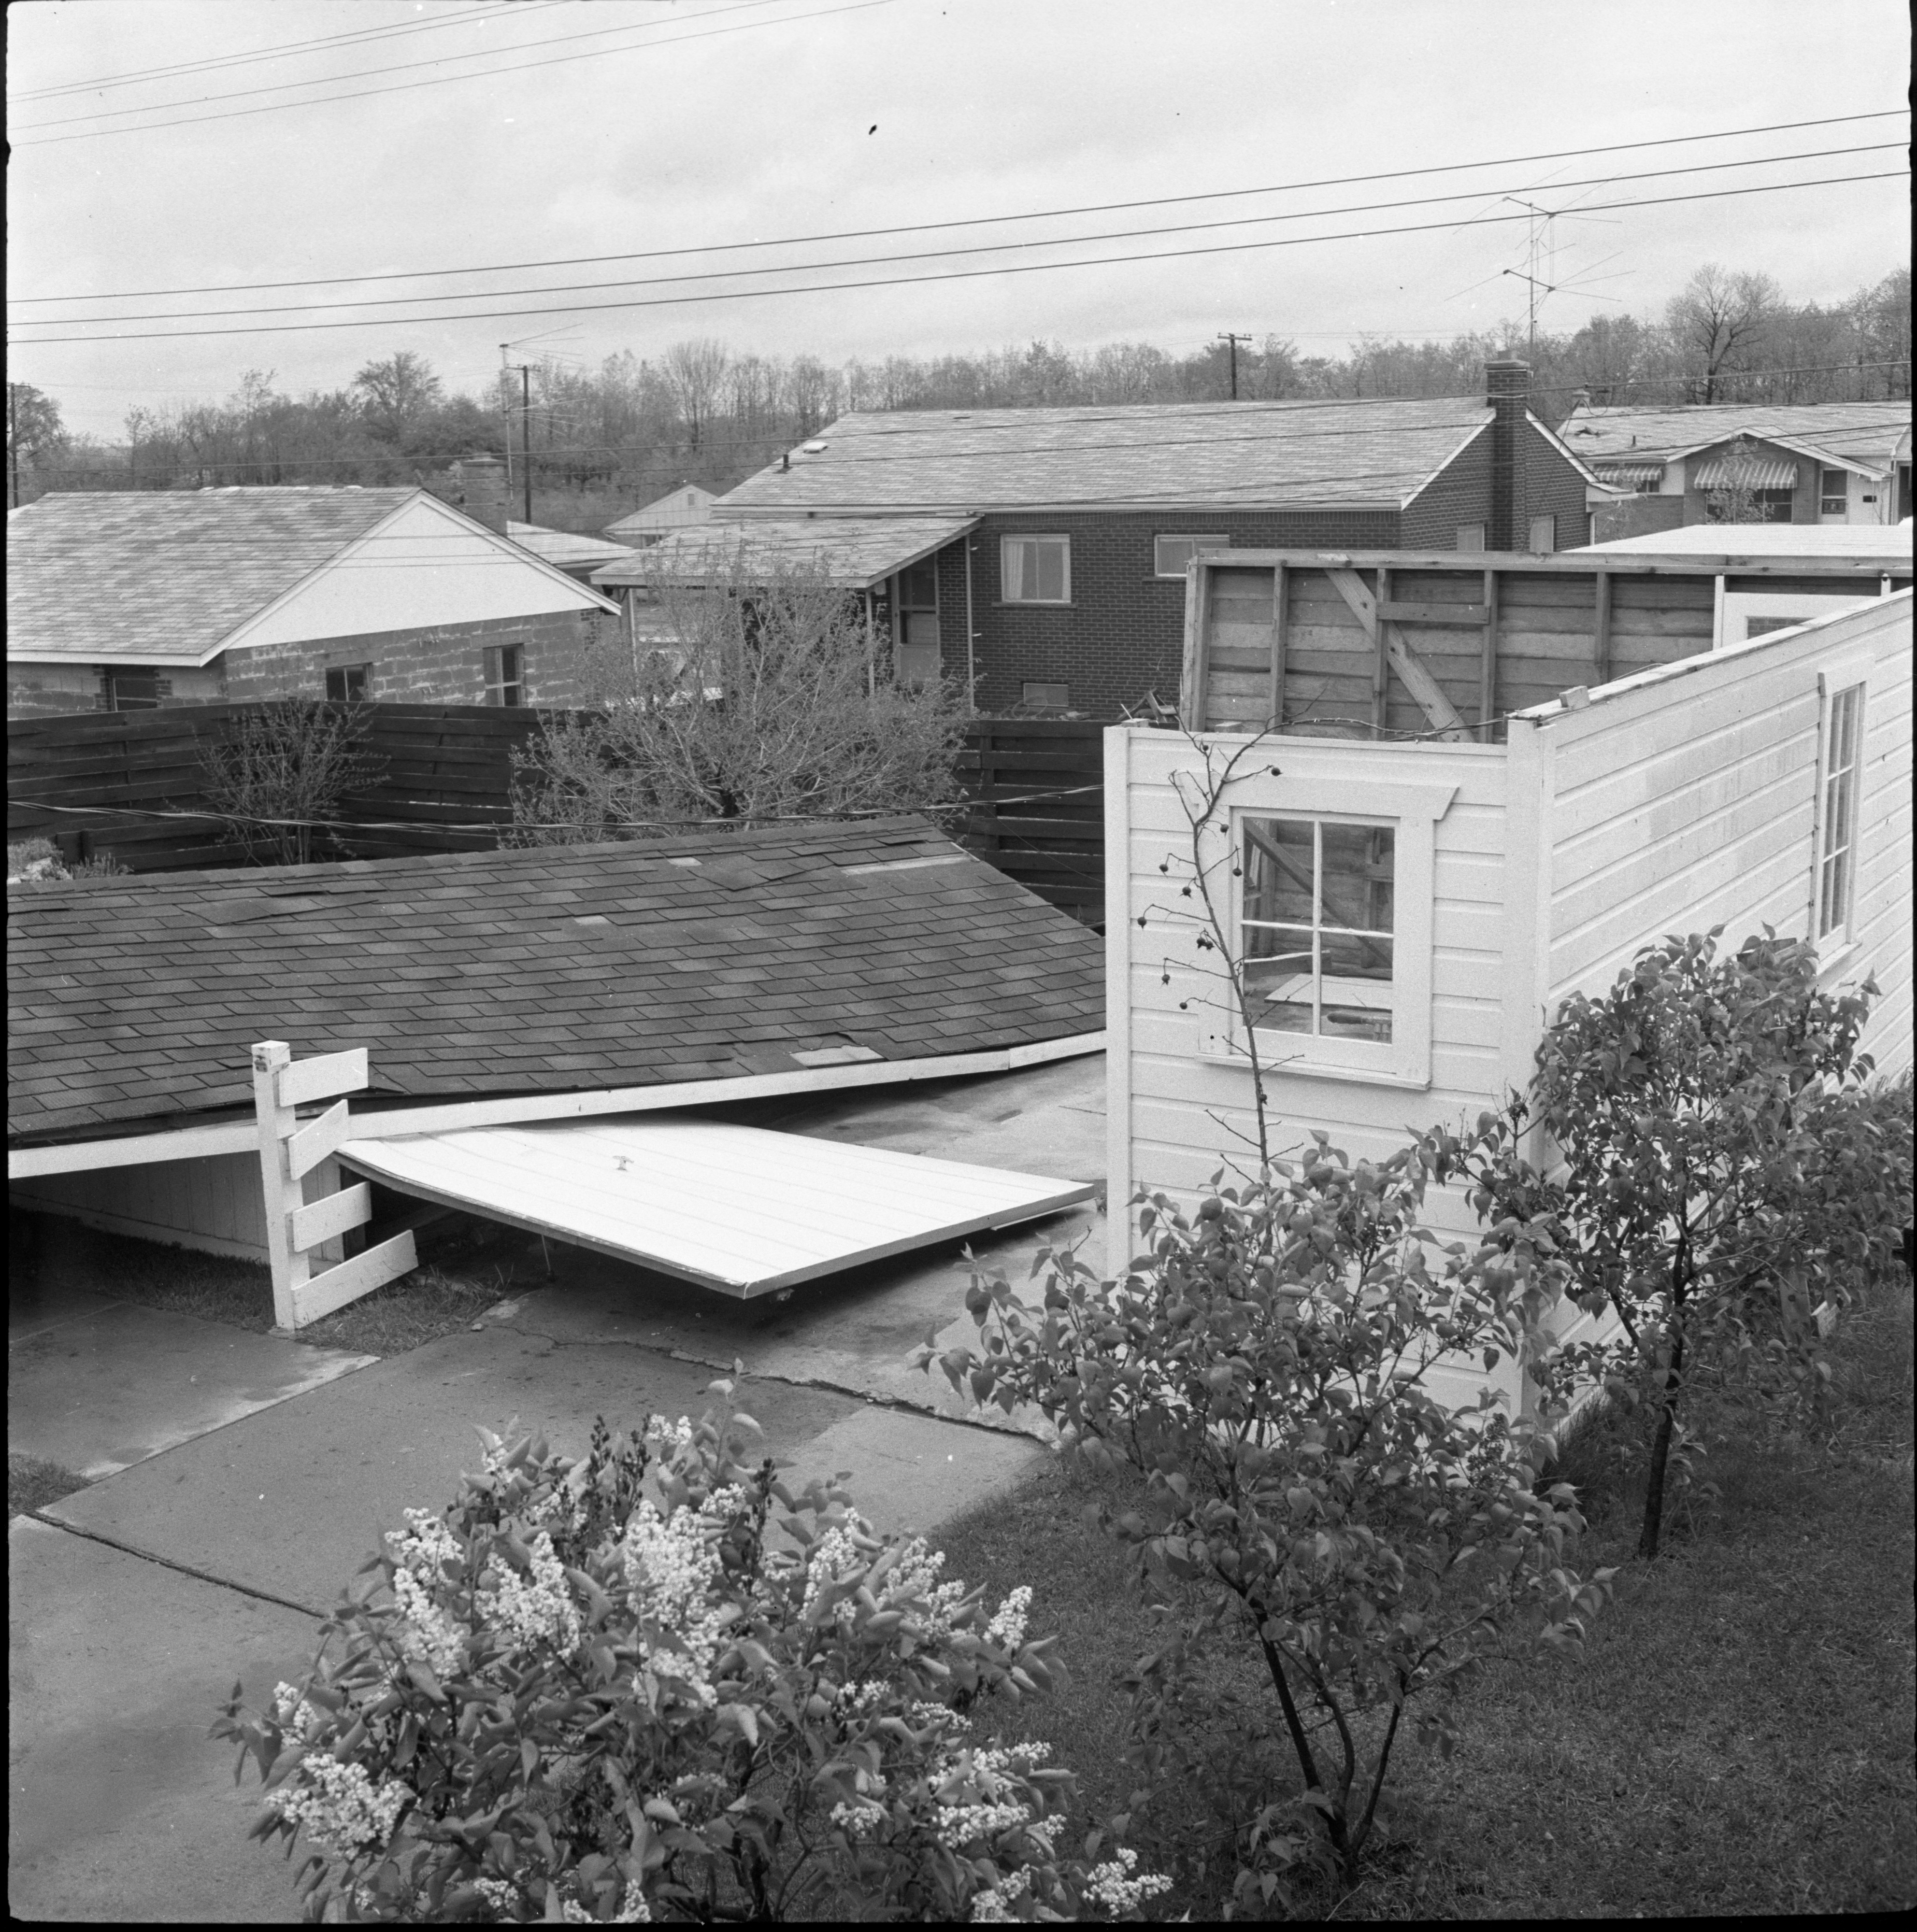 Remains Of A Garage At 1327 Kay Parkway Disassembled By The Windstorm, May 1959 image